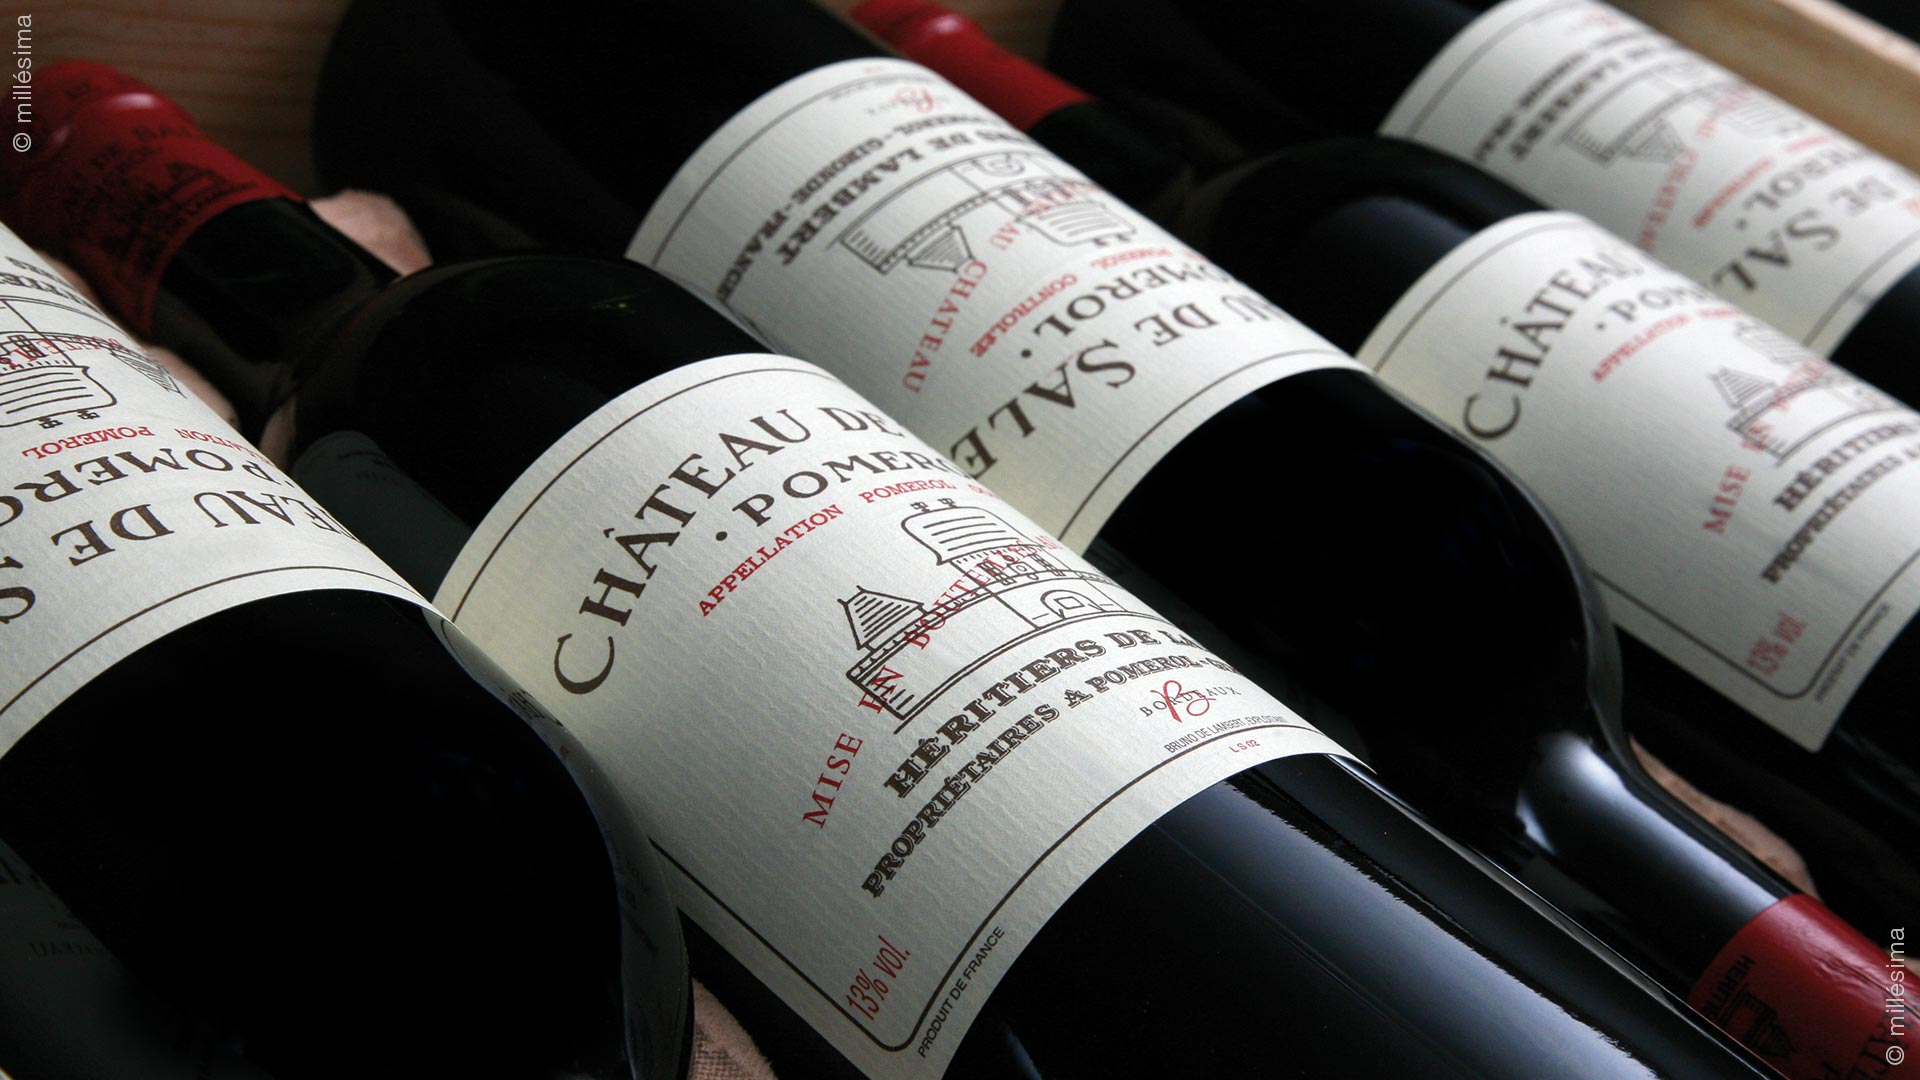 Chateau de Sales 2010 - 1